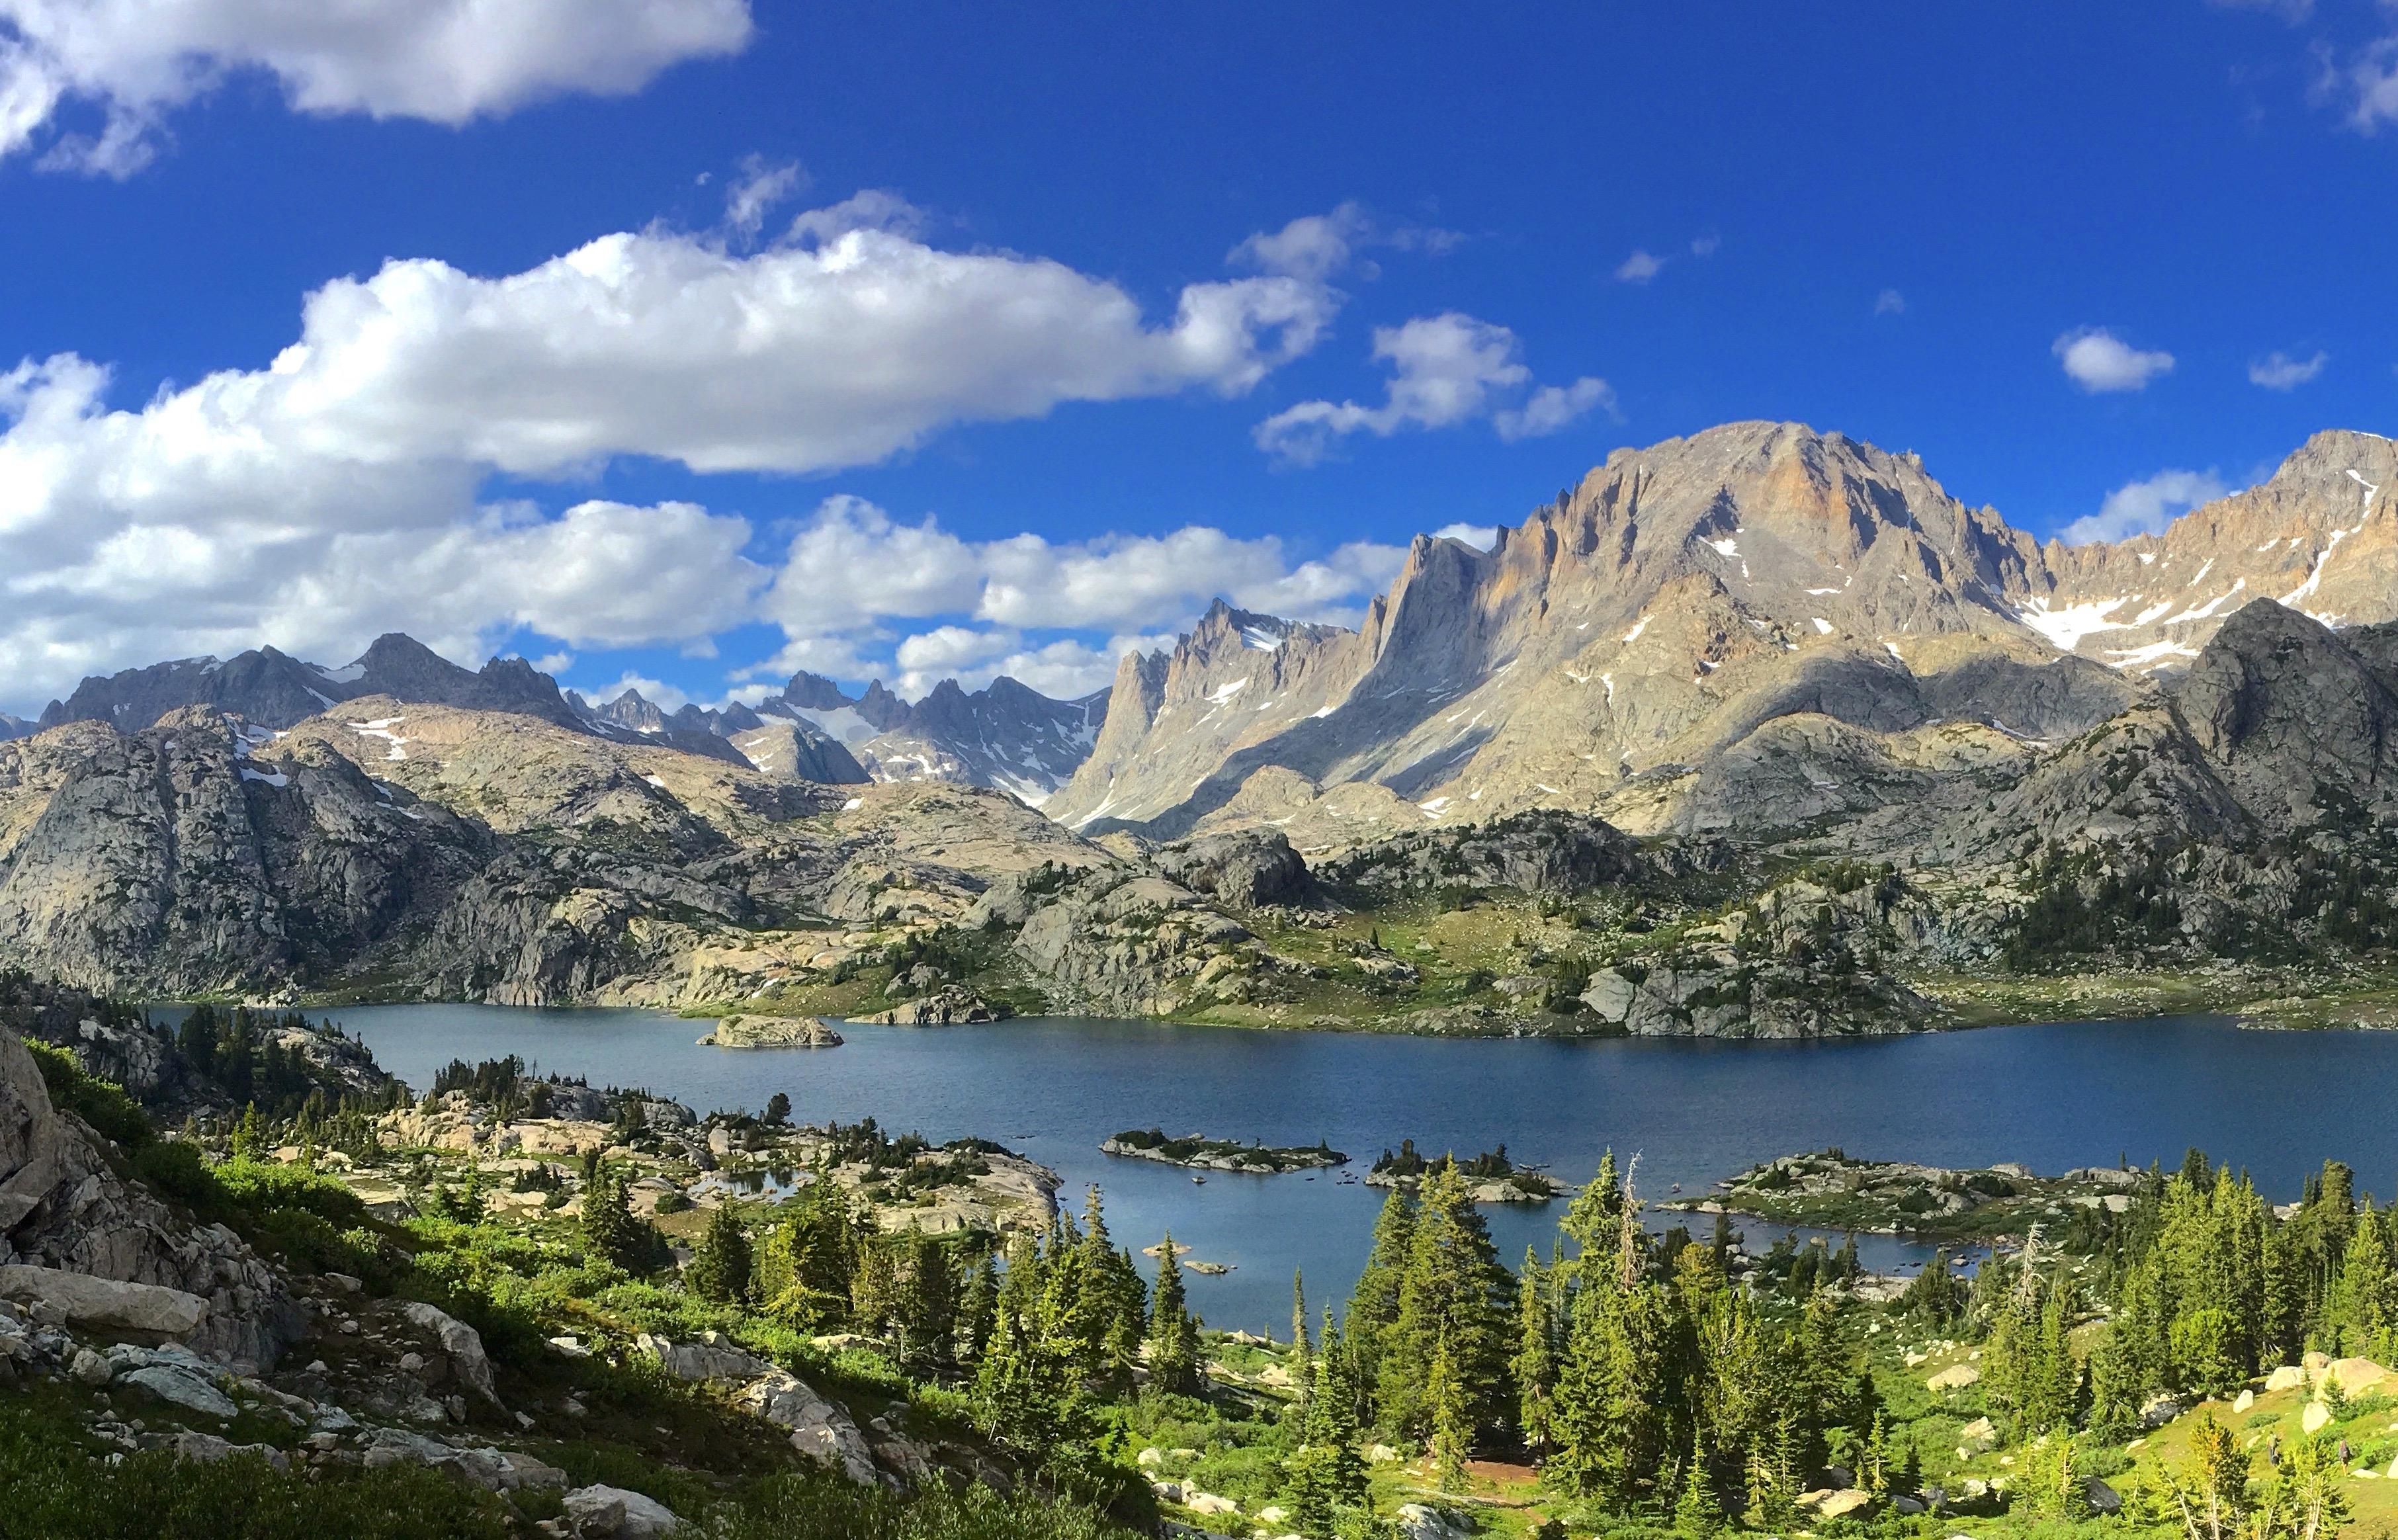 Island Lake Deep In The Wind River Range Of Wyoming Hiking Camping Outdoors Nature Travel Backpacking Adventure Marm Island Lake Wyoming Nature Camping